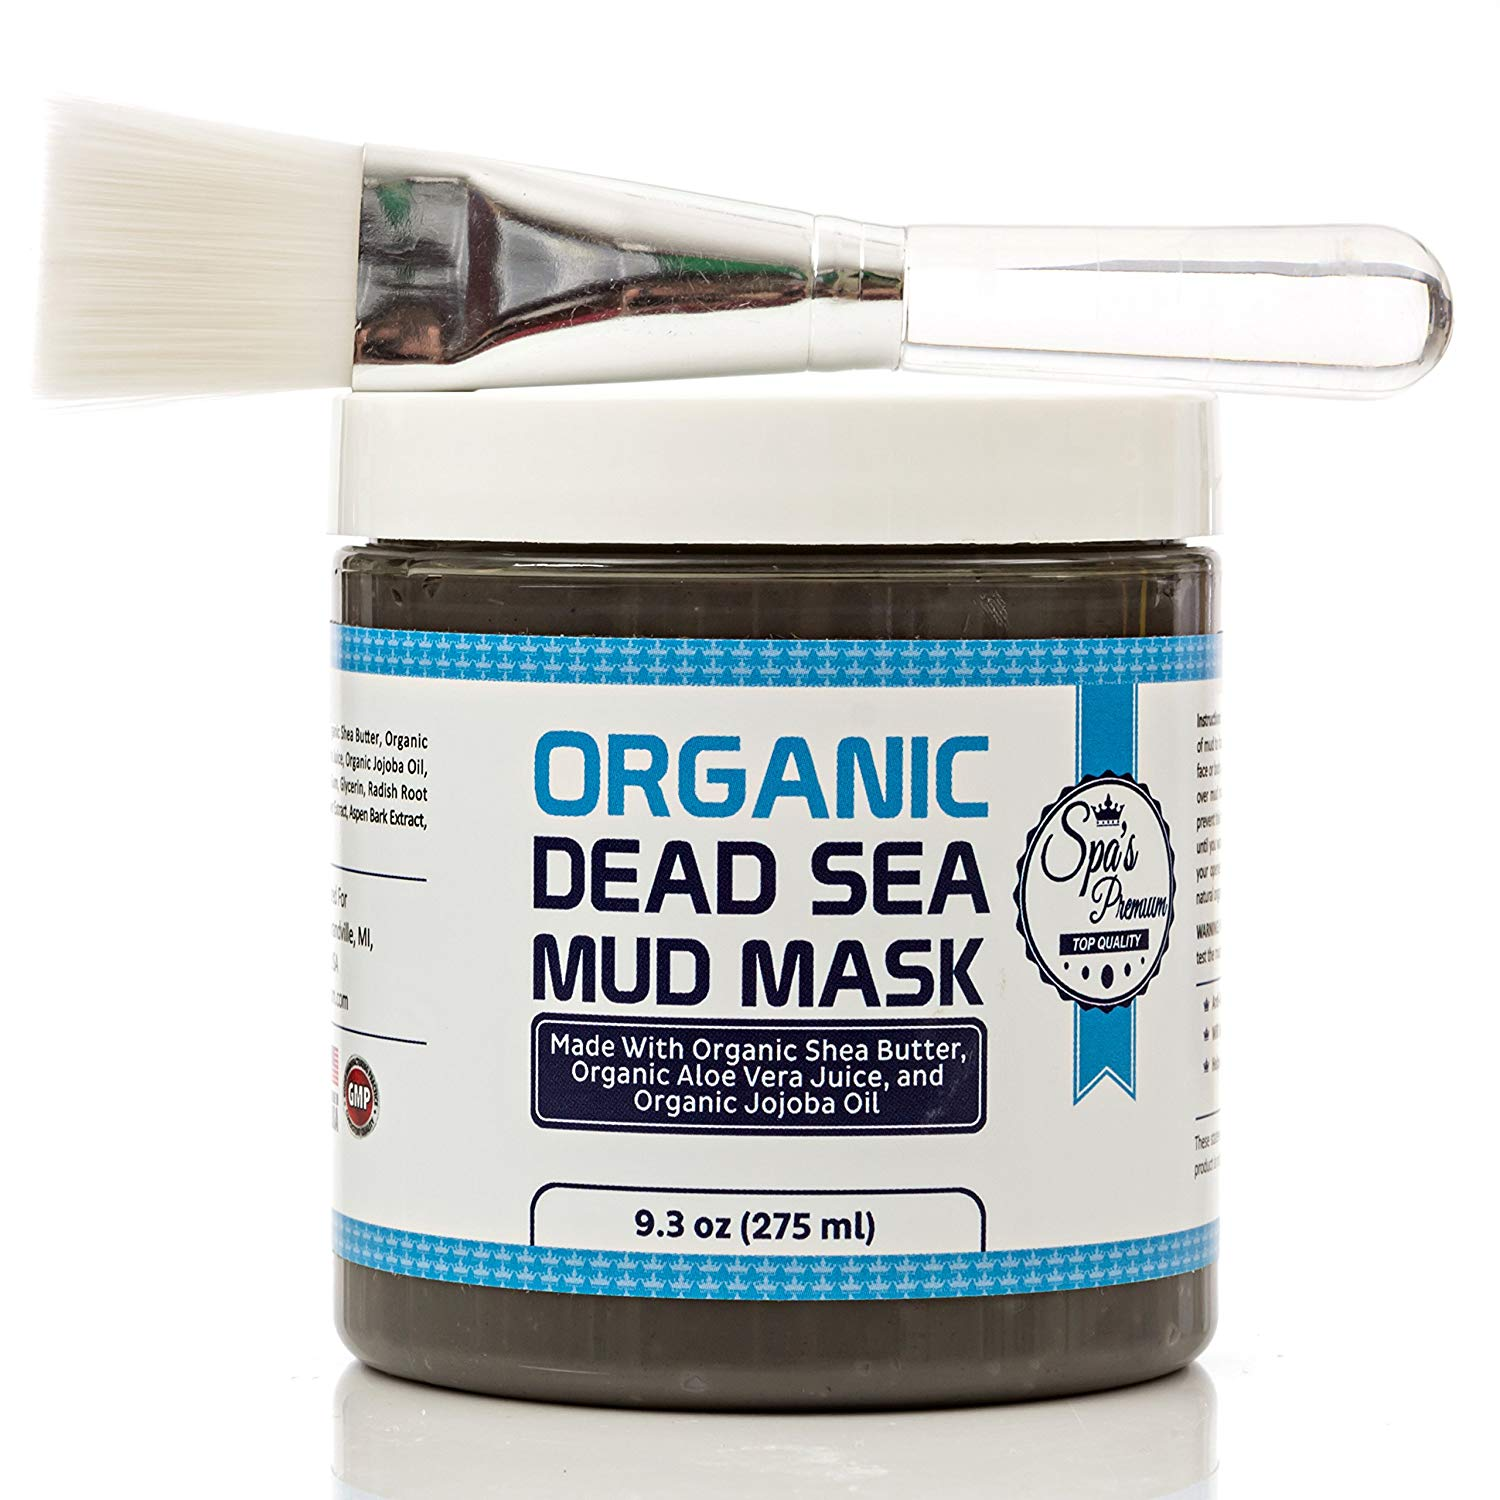 Dead Sea Mud Mask & Free Face Brush - HUGE Jar - Clears Acne - Anti-Aging - Exfoliate Skin - Moisturize - Aloe Vera Juice - Jojoba - Sunflower - Hickory Bark Extract - Calendula Oil - Shea Butter